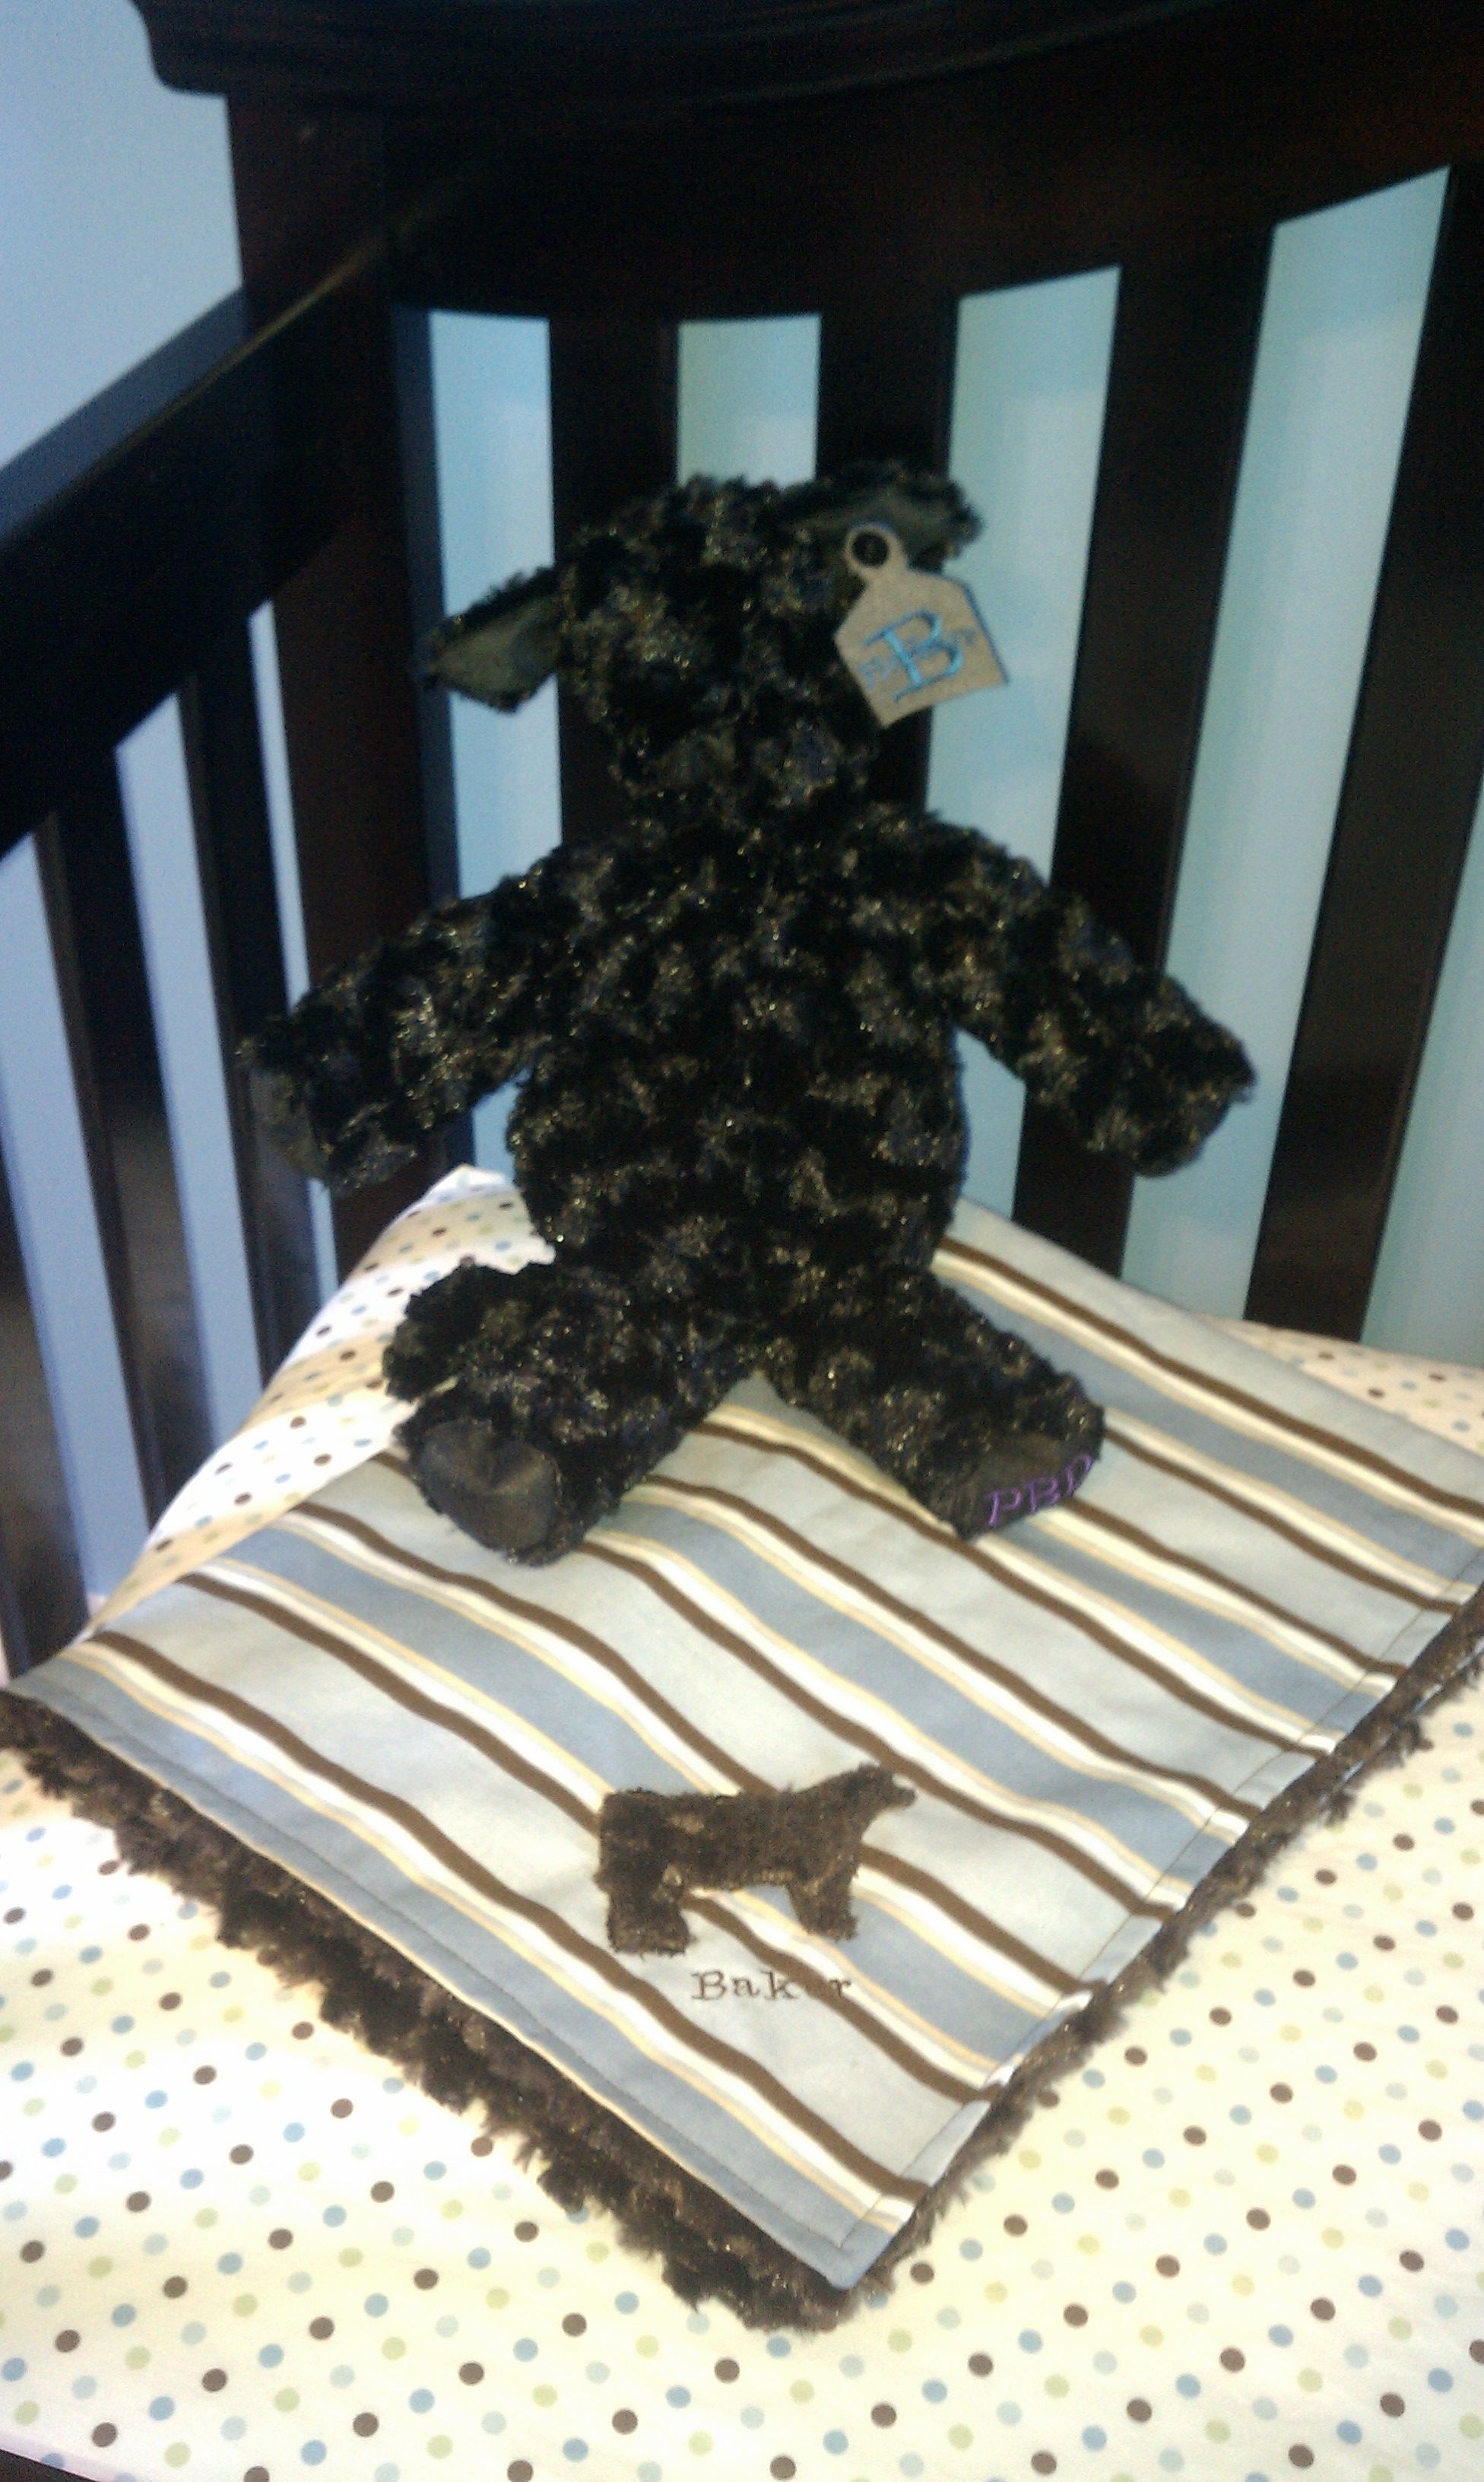 i had this cuddly cow and minky blanket made from the great folks at Purple Banner Desings.